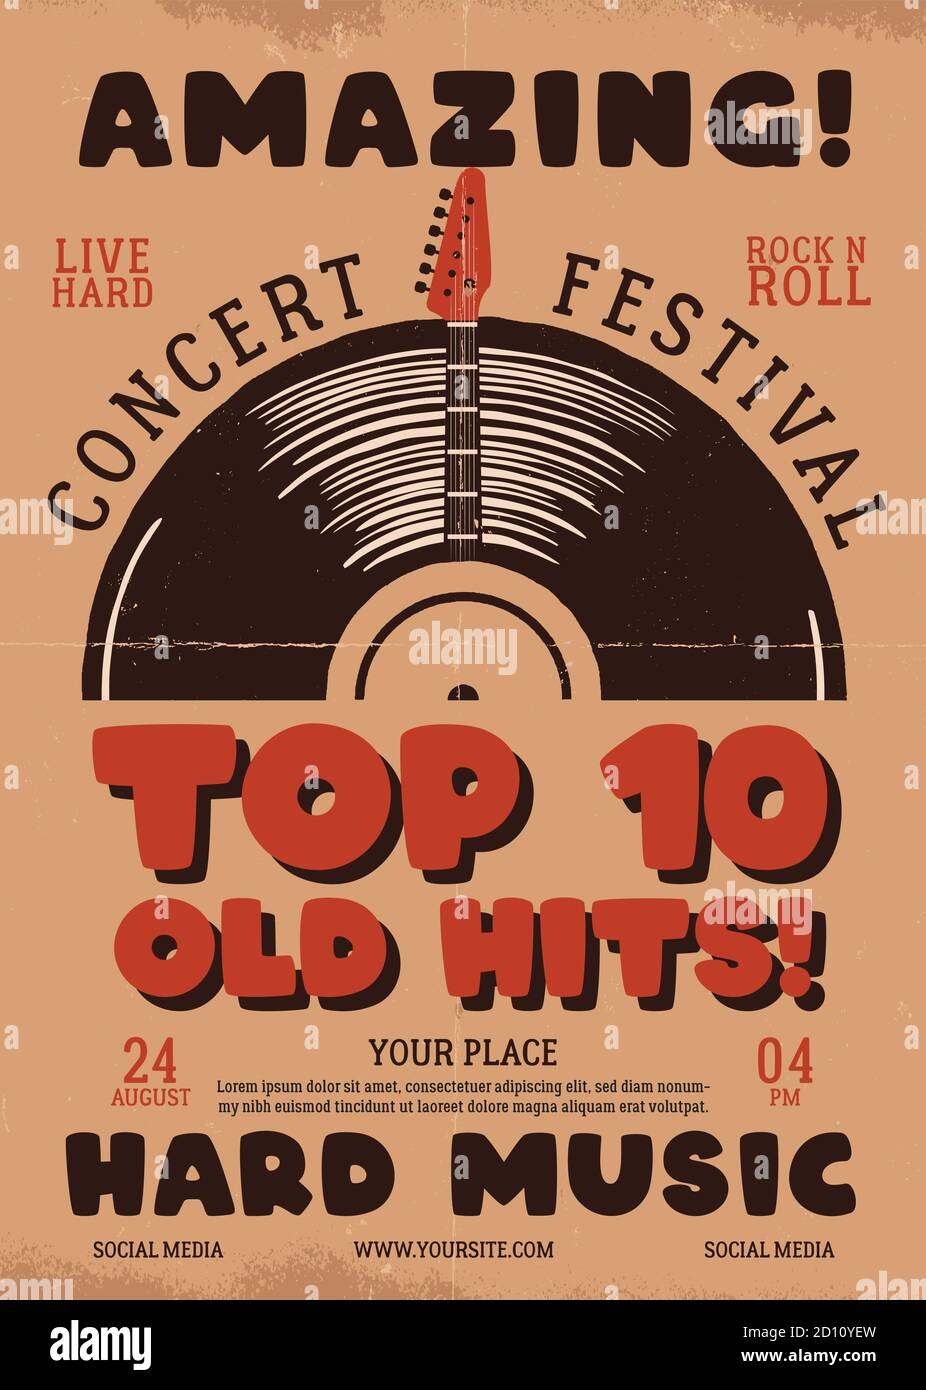 Retro Music flyer A4 format. Top 10 old hits poster graphic design with guitar and text. Stock vector hard music card Stock Vector